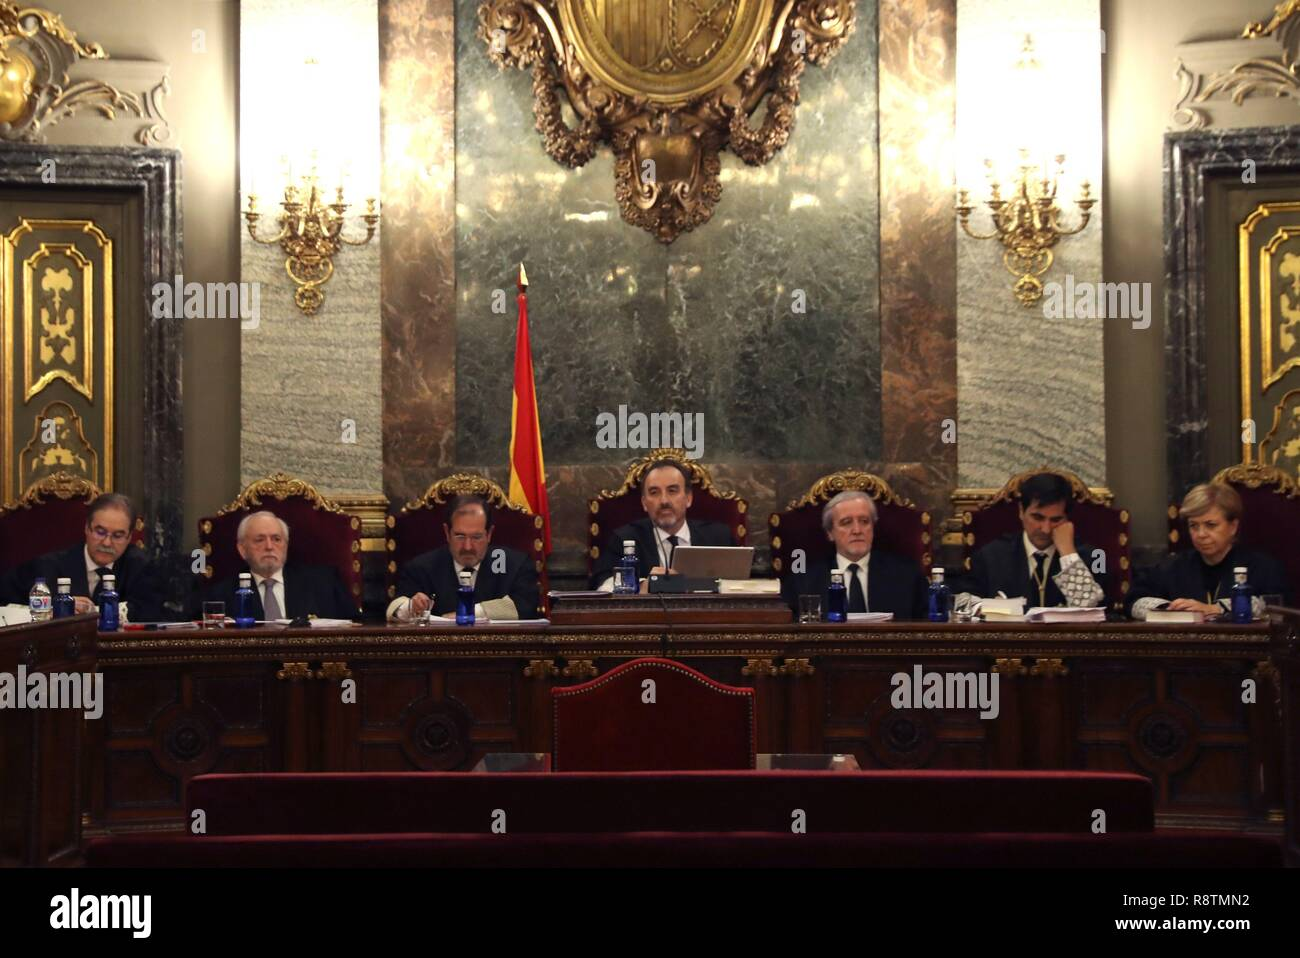 71cb5d77f6e Palomo Stock Photos   Palomo Stock Images - Page 2 - Alamy